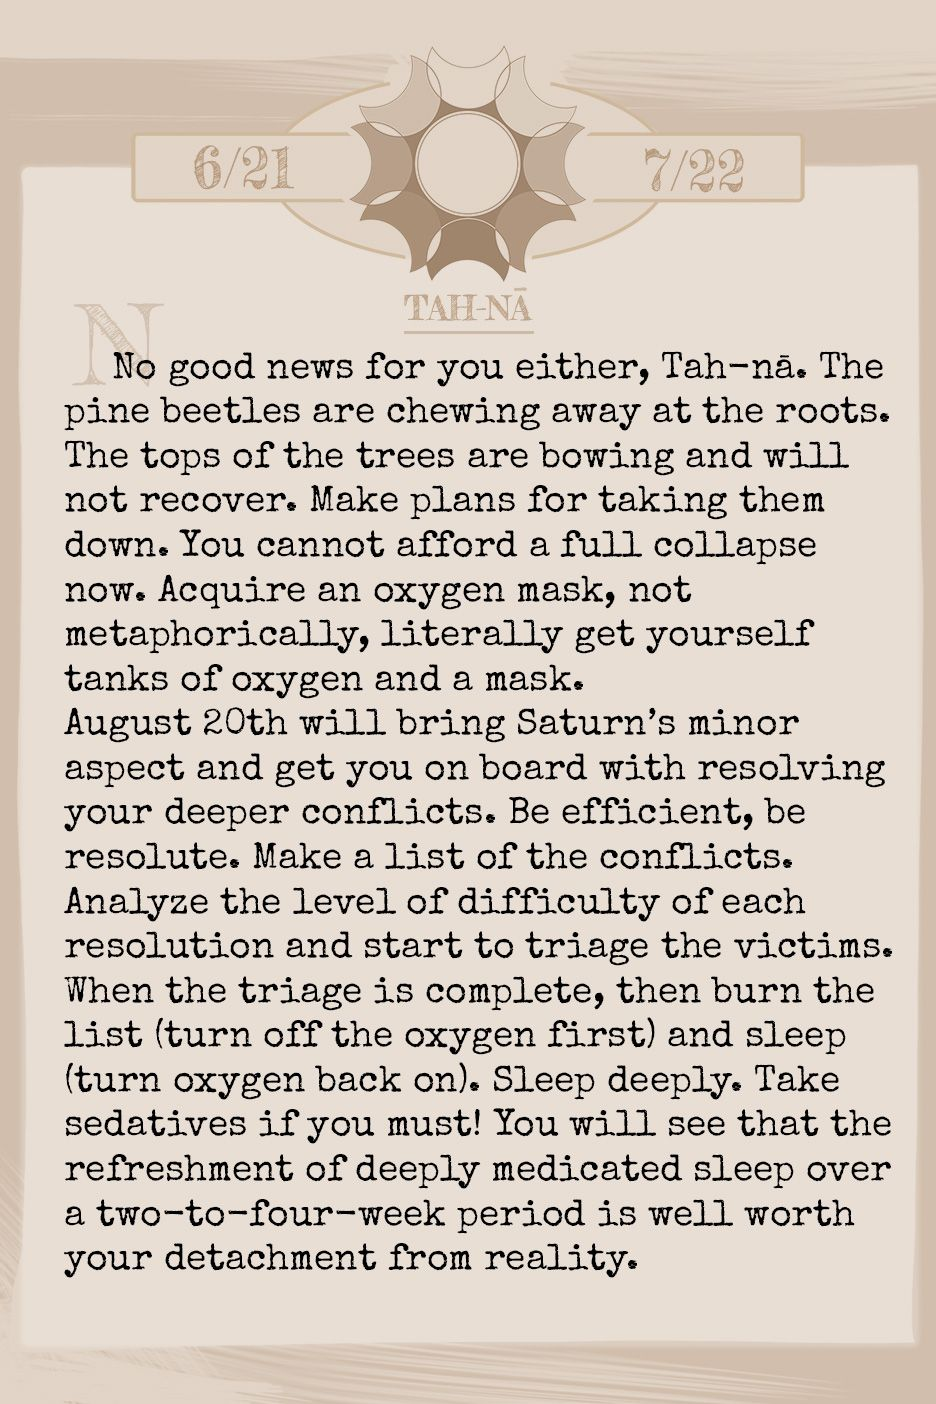 August 2018 Horoscope (Old sign: Cancer) No good news for you either, Tane'. The pine beetles are chewing away at the roots. The tops of the trees are bowing and will not recover. Make plans for taking them down. You cannot afford a full collapse now. Acquire an oxygen mask, not metaphorically, literally get yourself tanks of oxygen and a mask. August 20th will bring Saturn's minor aspect and get you on board with resolving your deeper conflicts. Be efficient, be resolute. Make a list of the conflicts. Analyze the level of difficulty of each resolution and start to triage the victims. When the triage is complete, then burn the list (turn off the oxygen first) and sleep (turn oxygen back on). Sleep deeply. Take sedatives if you must! You will see that the refreshment of deeply medicated sleep over a two-to-four-week period is well worth your detachment from reality.